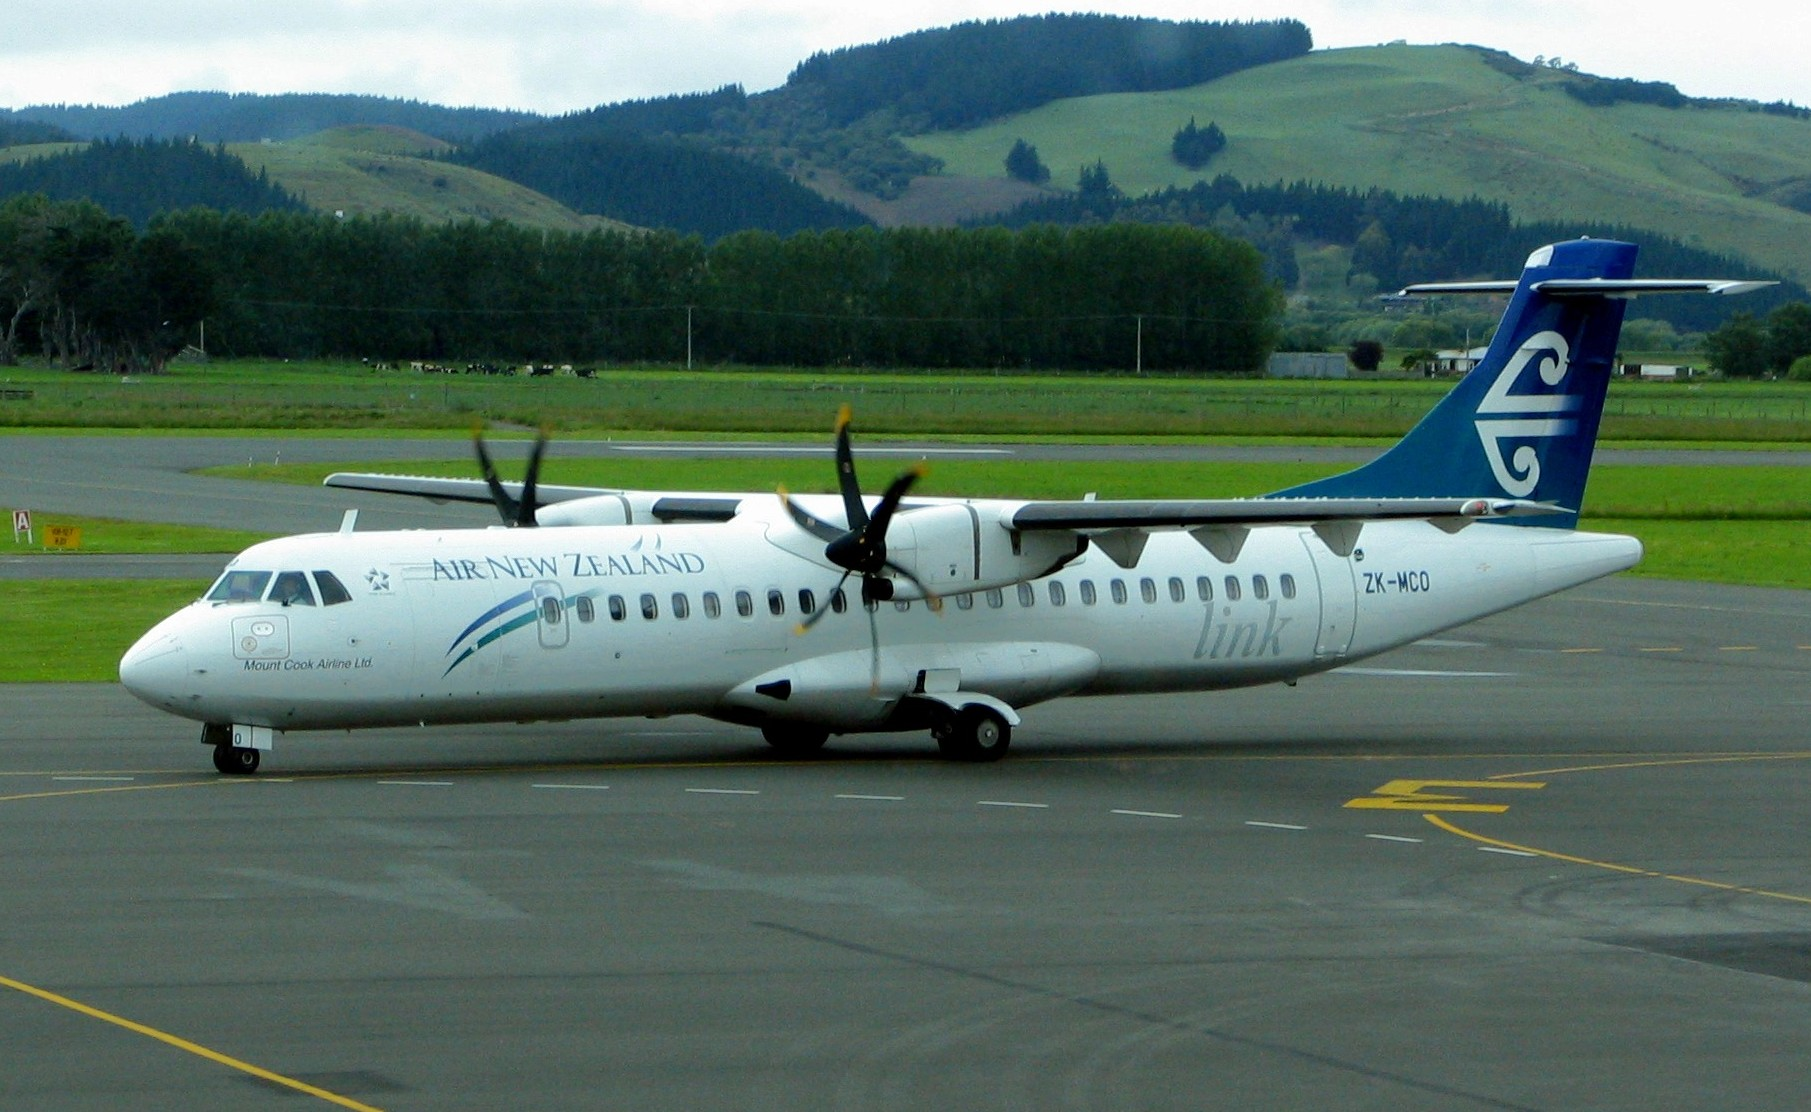 Air_New_Zealand ATR 73 ZK-MCO at Dunedin Airport. The ATR is another example of European aircraft makers collaborating to produce outstanding aircraft.